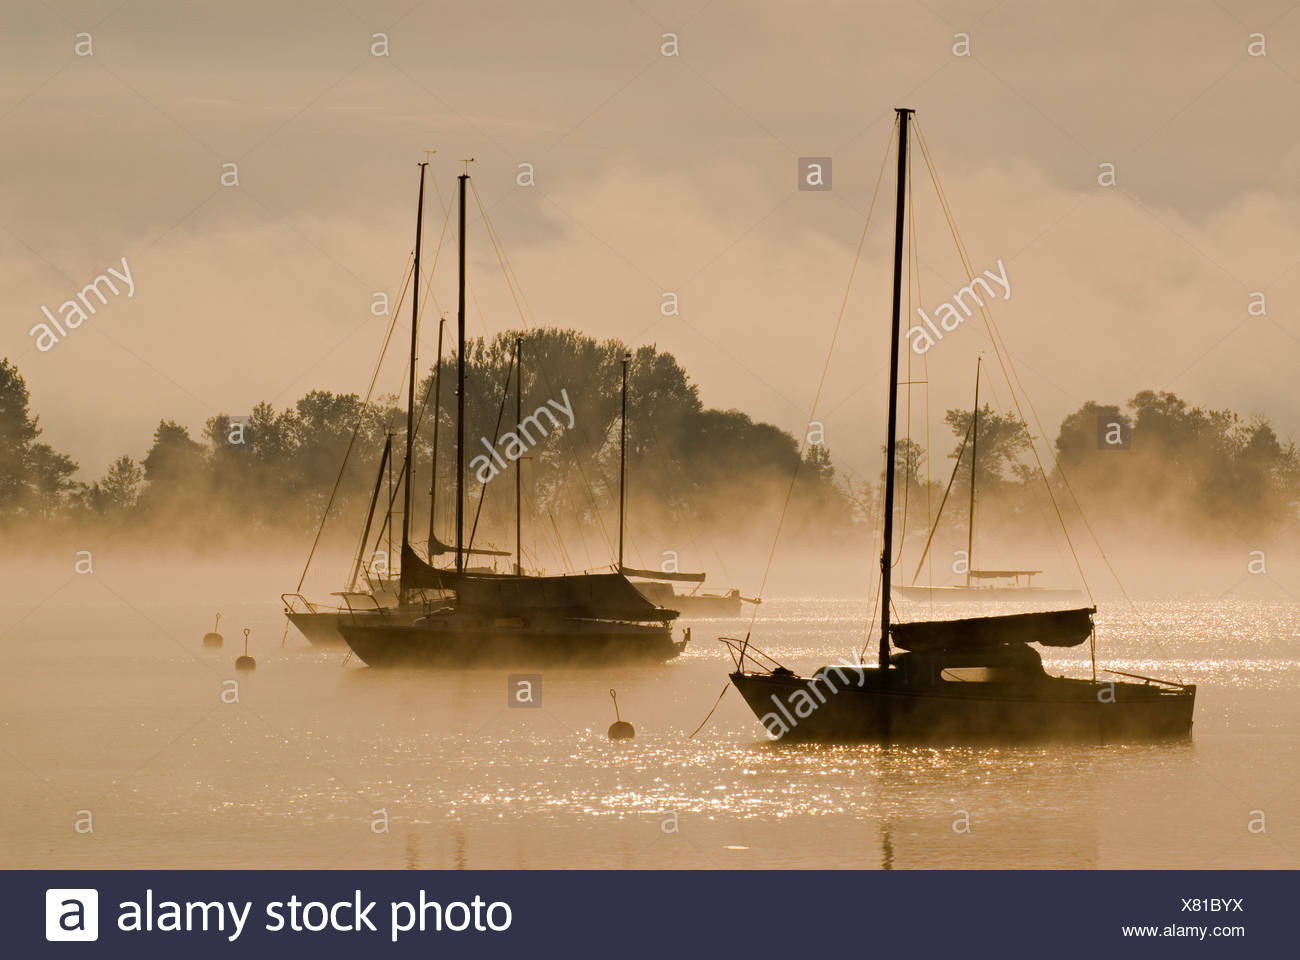 Sailing boats and fog at the southern end of Ammersee lake in Diessen, Bavaria, Germany, Europe Stock Photo